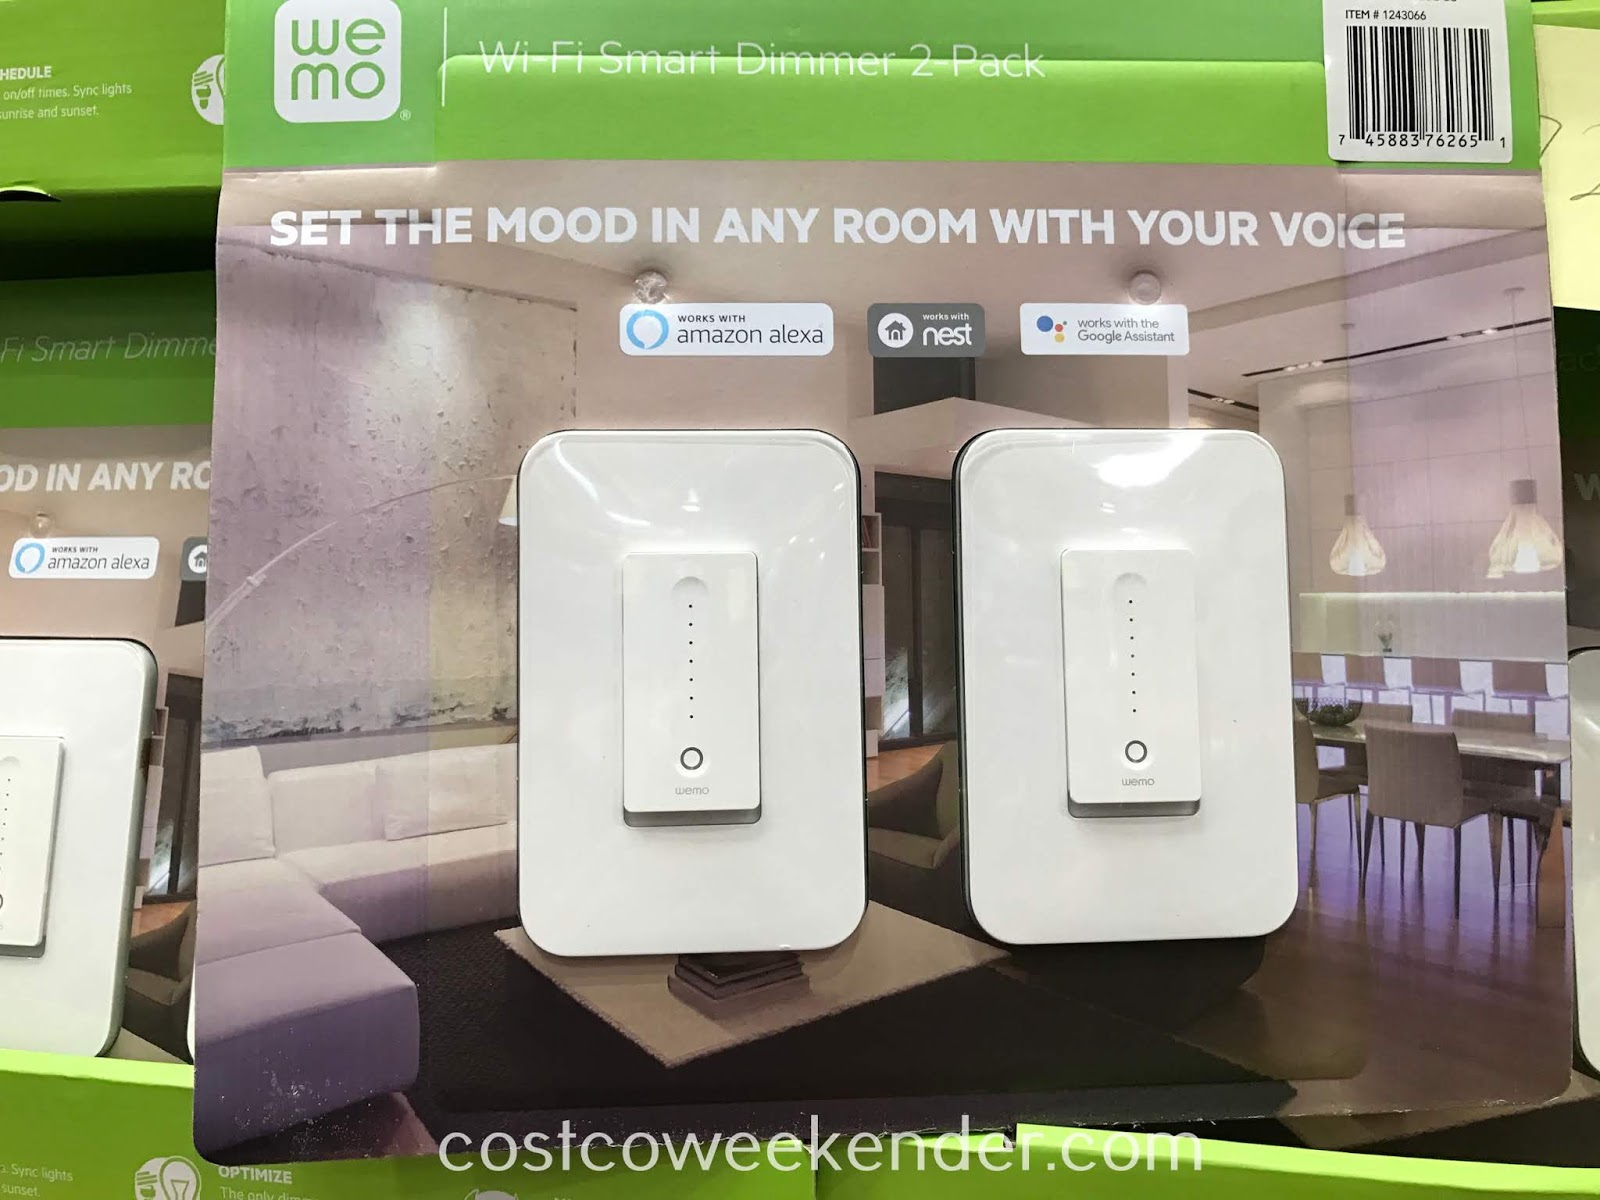 Make your home into a smart home with the Wemo Wi-Fi Smart Dimmer Switch